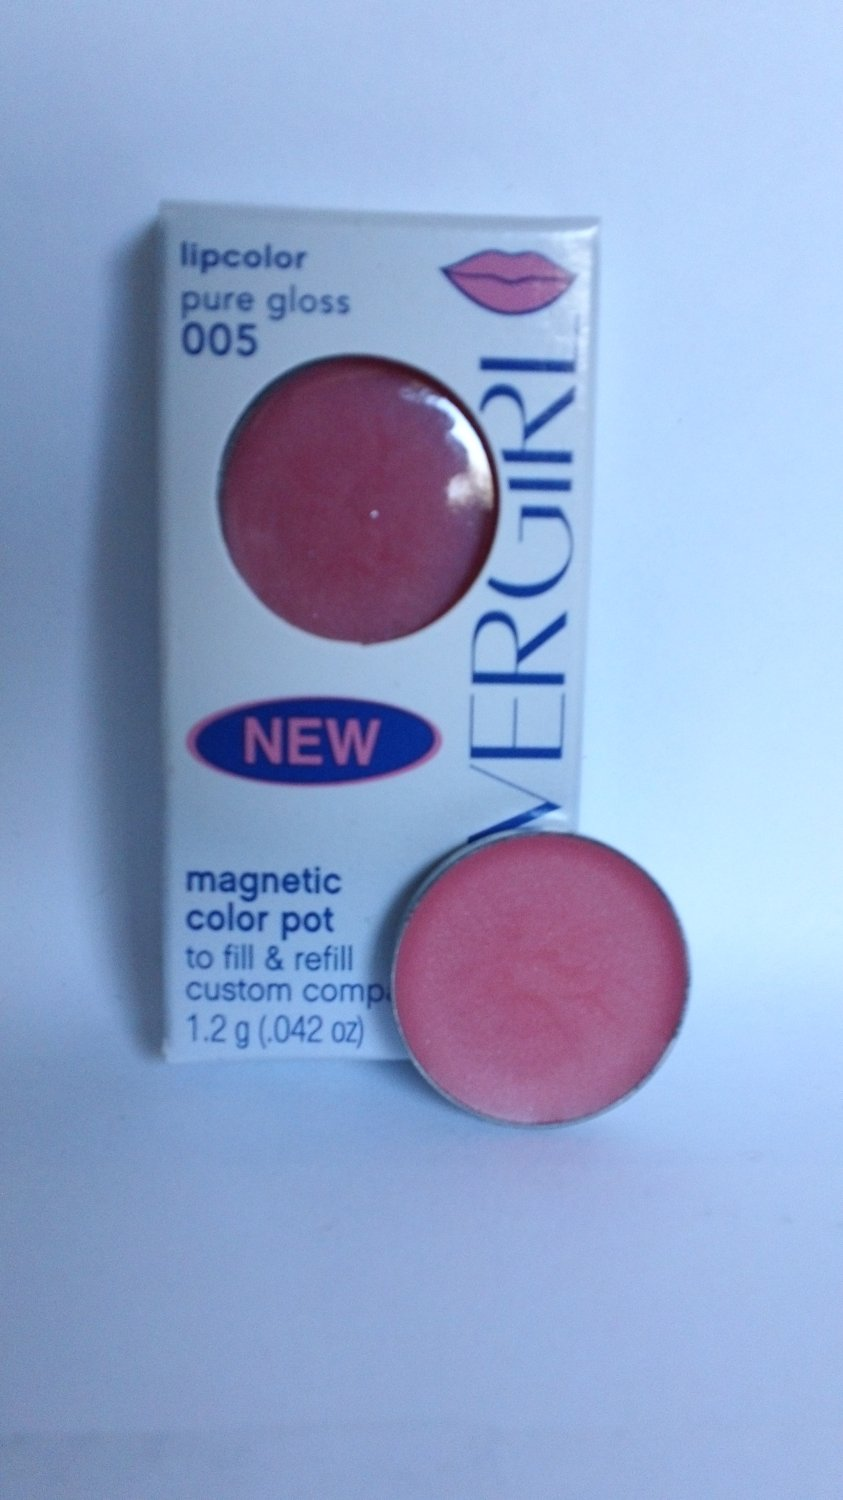 CoverGirl Magnetic Color Pot Lip Gloss #005 Pure Gloss